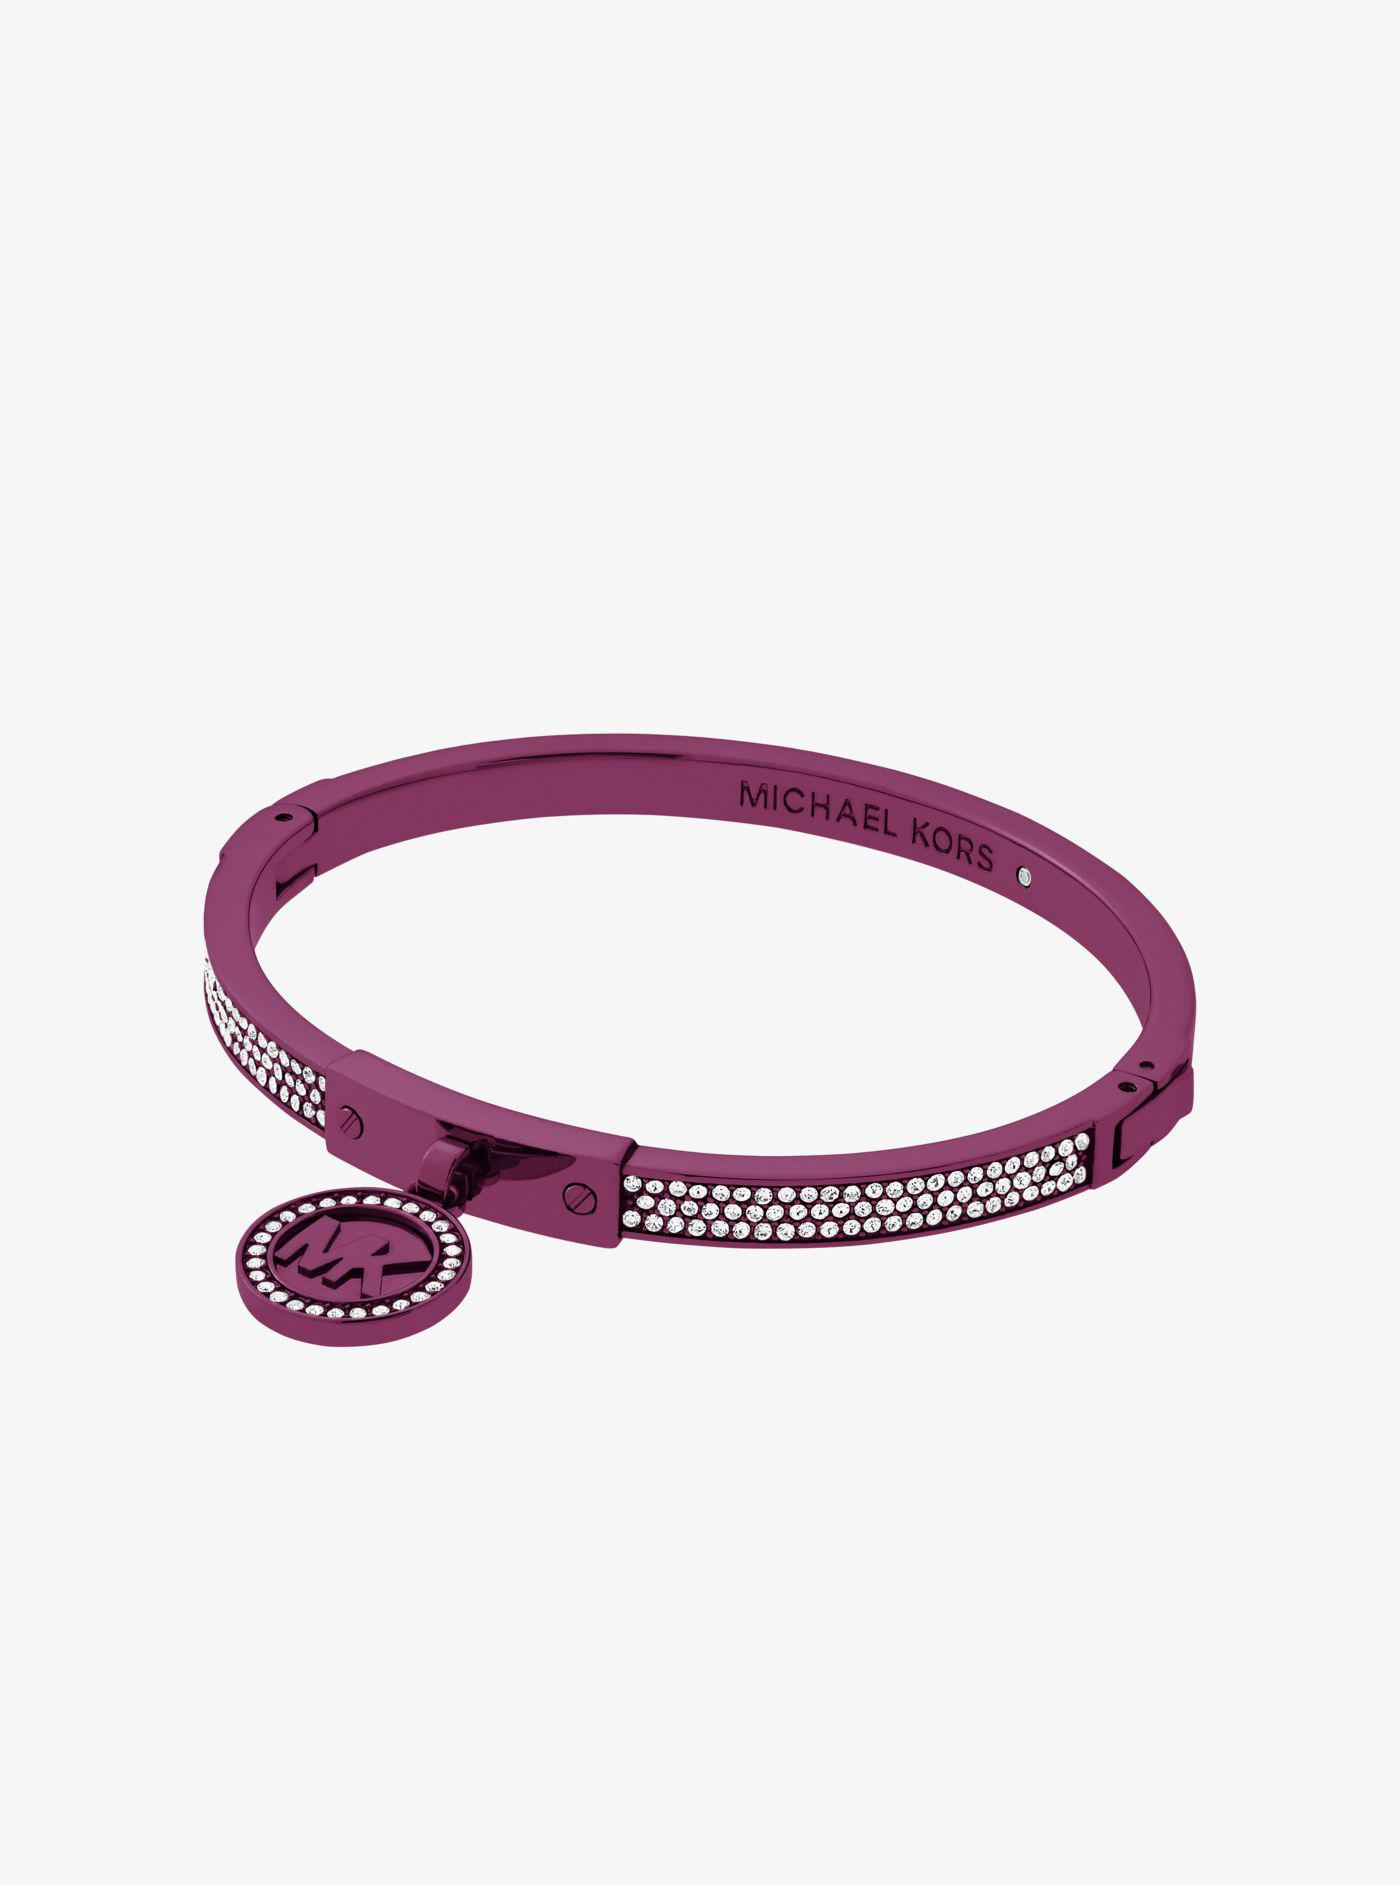 Michael Kors Fulton Plum-Tone Bangle WTmwciODQ5